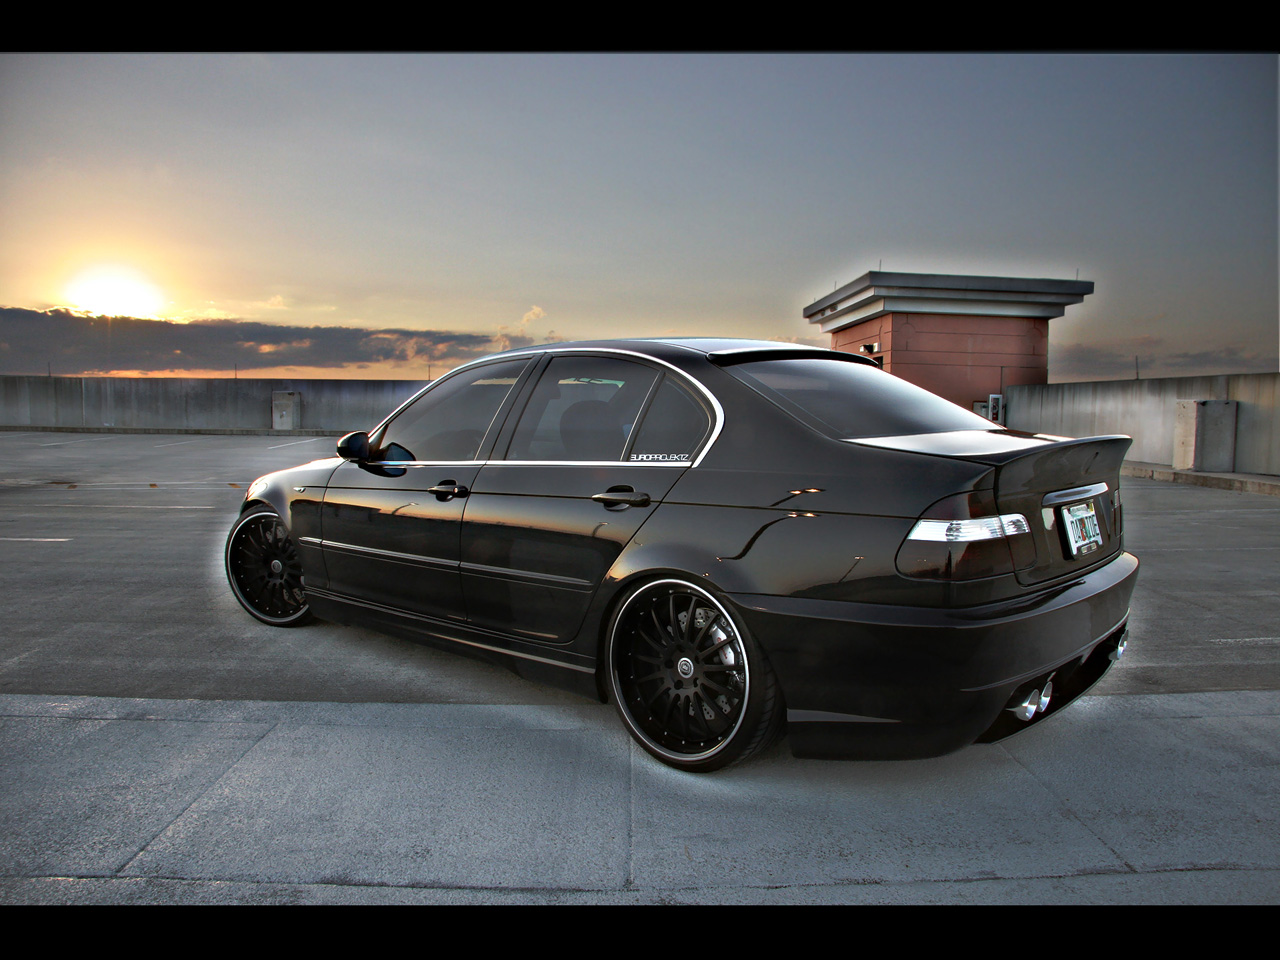 Bmw 330 2011 Review Amazing Pictures And Images Look